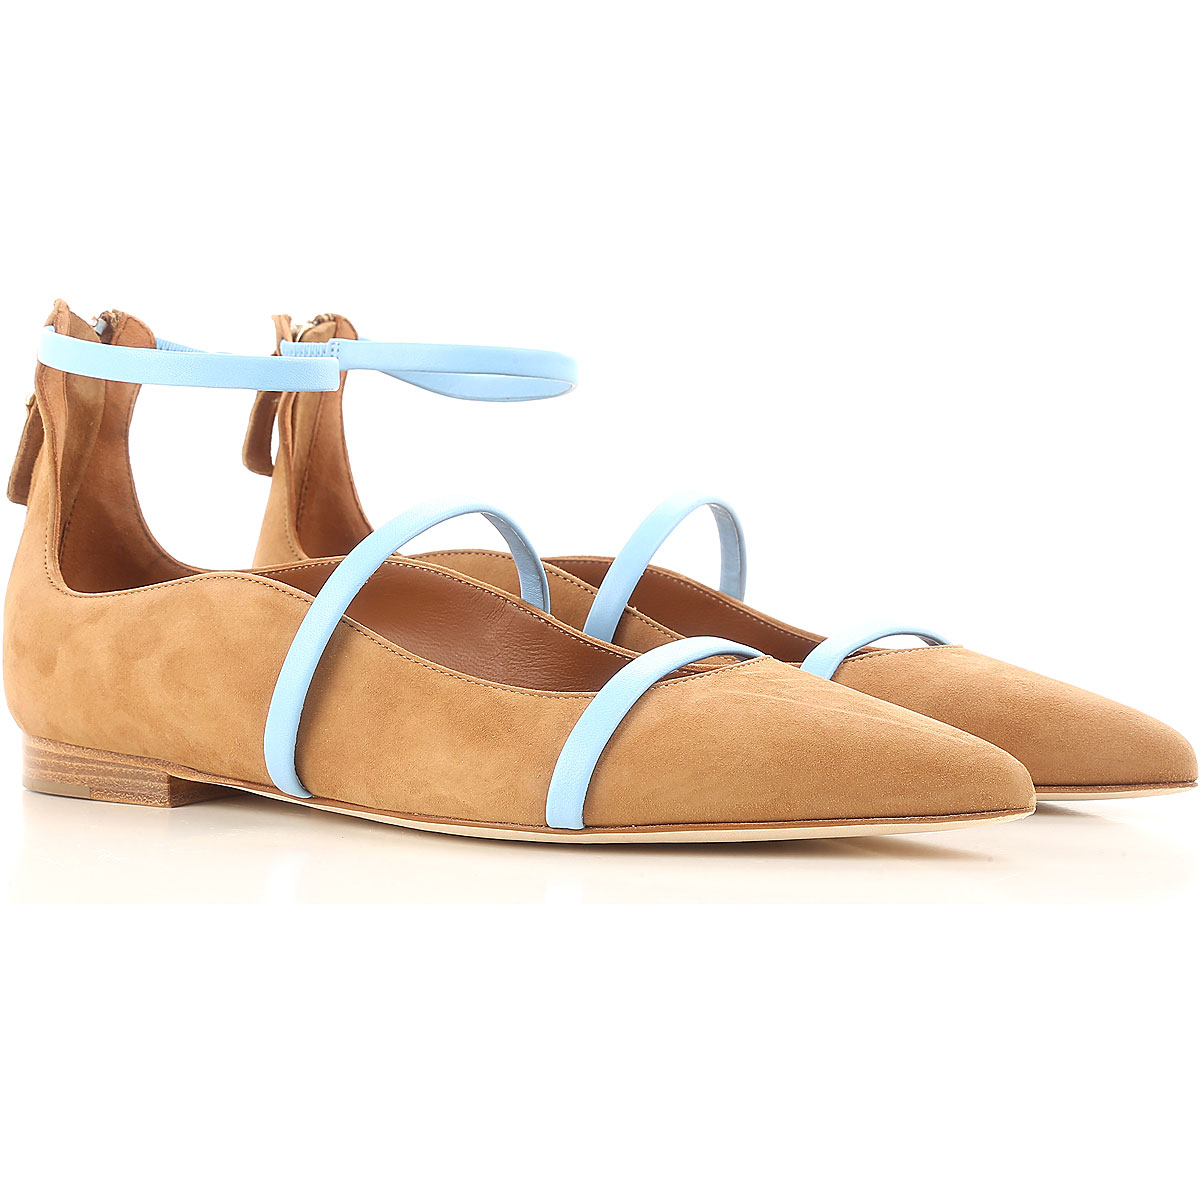 Image of Malone Souliers Ballet Flats Ballerina Shoes for Women On Sale, Tan, Suede leather, 2017, 5 6 6.5